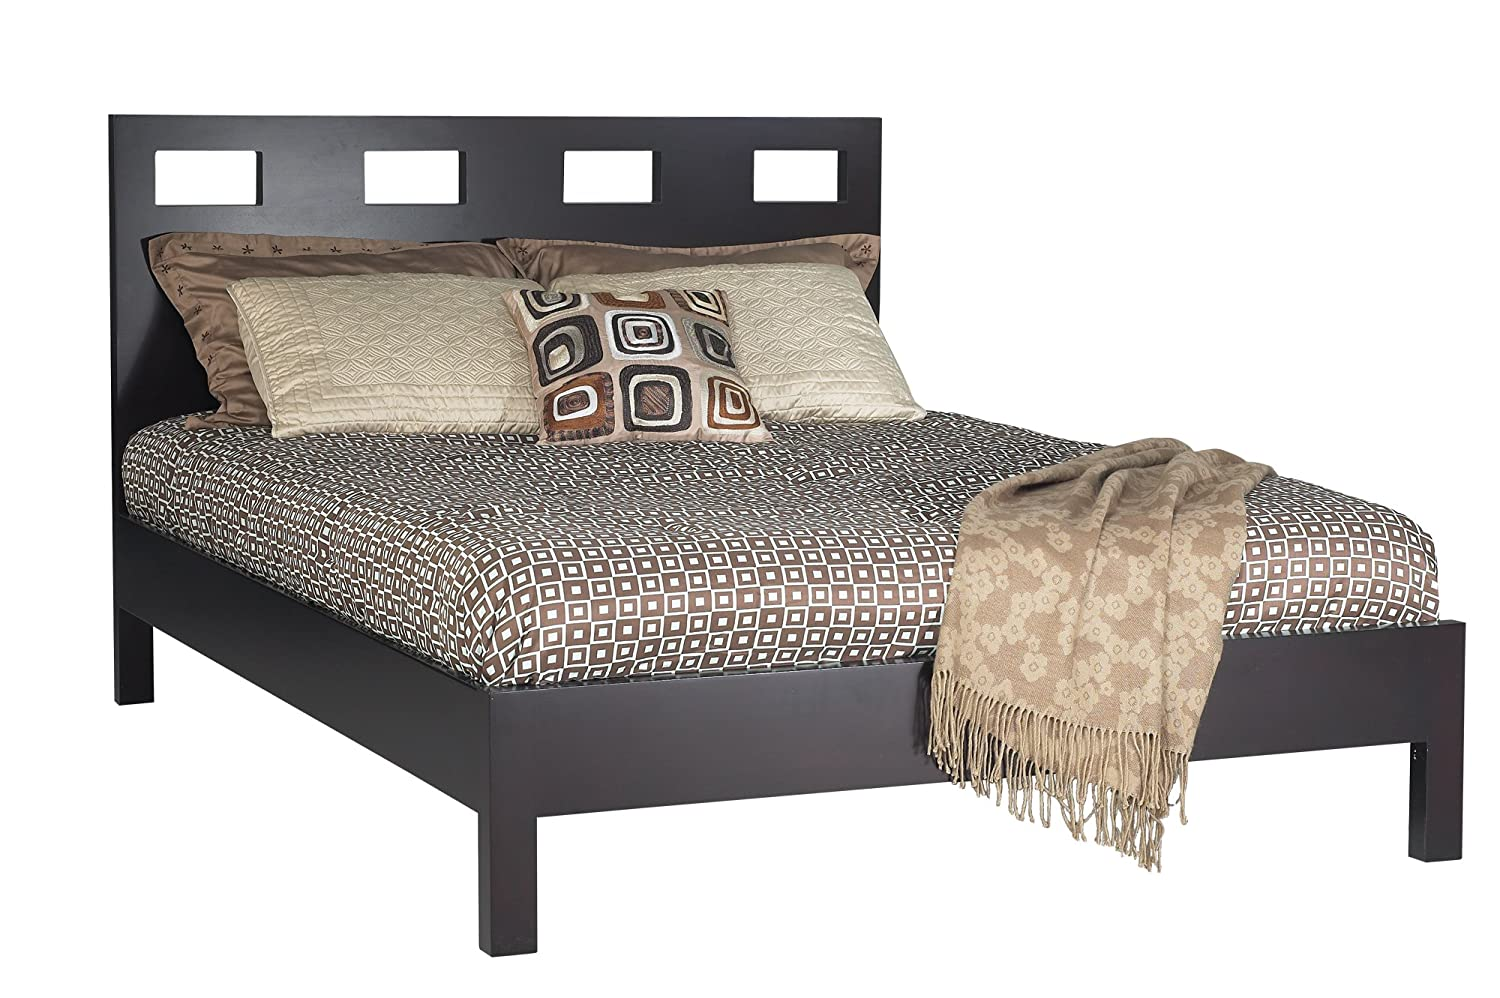 Modus Furniture Riva Platform Bed, Espresso, King